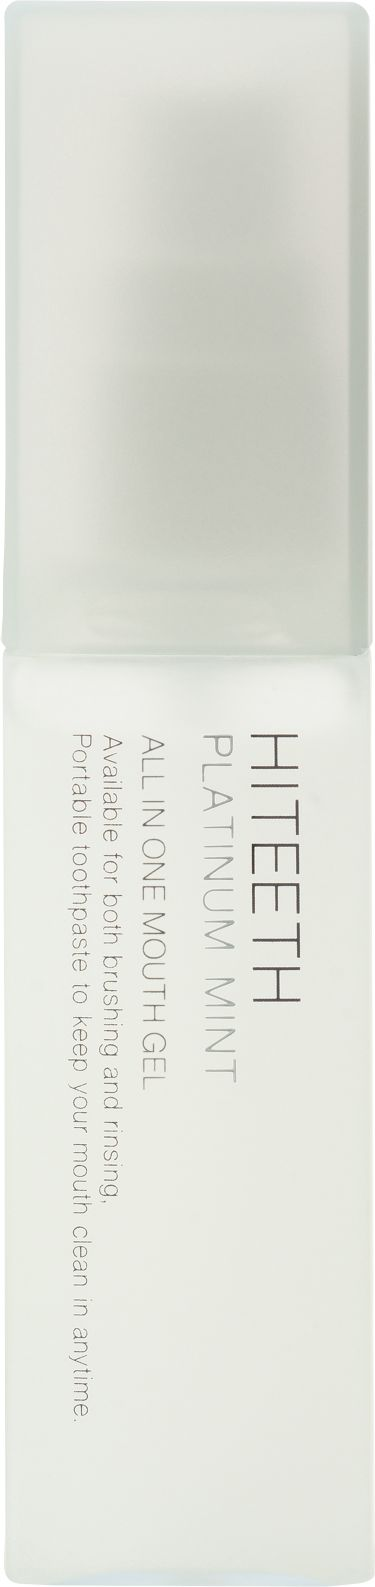 HITEETH ALL IN ONE MOUTH GEL PLATINUM MINT